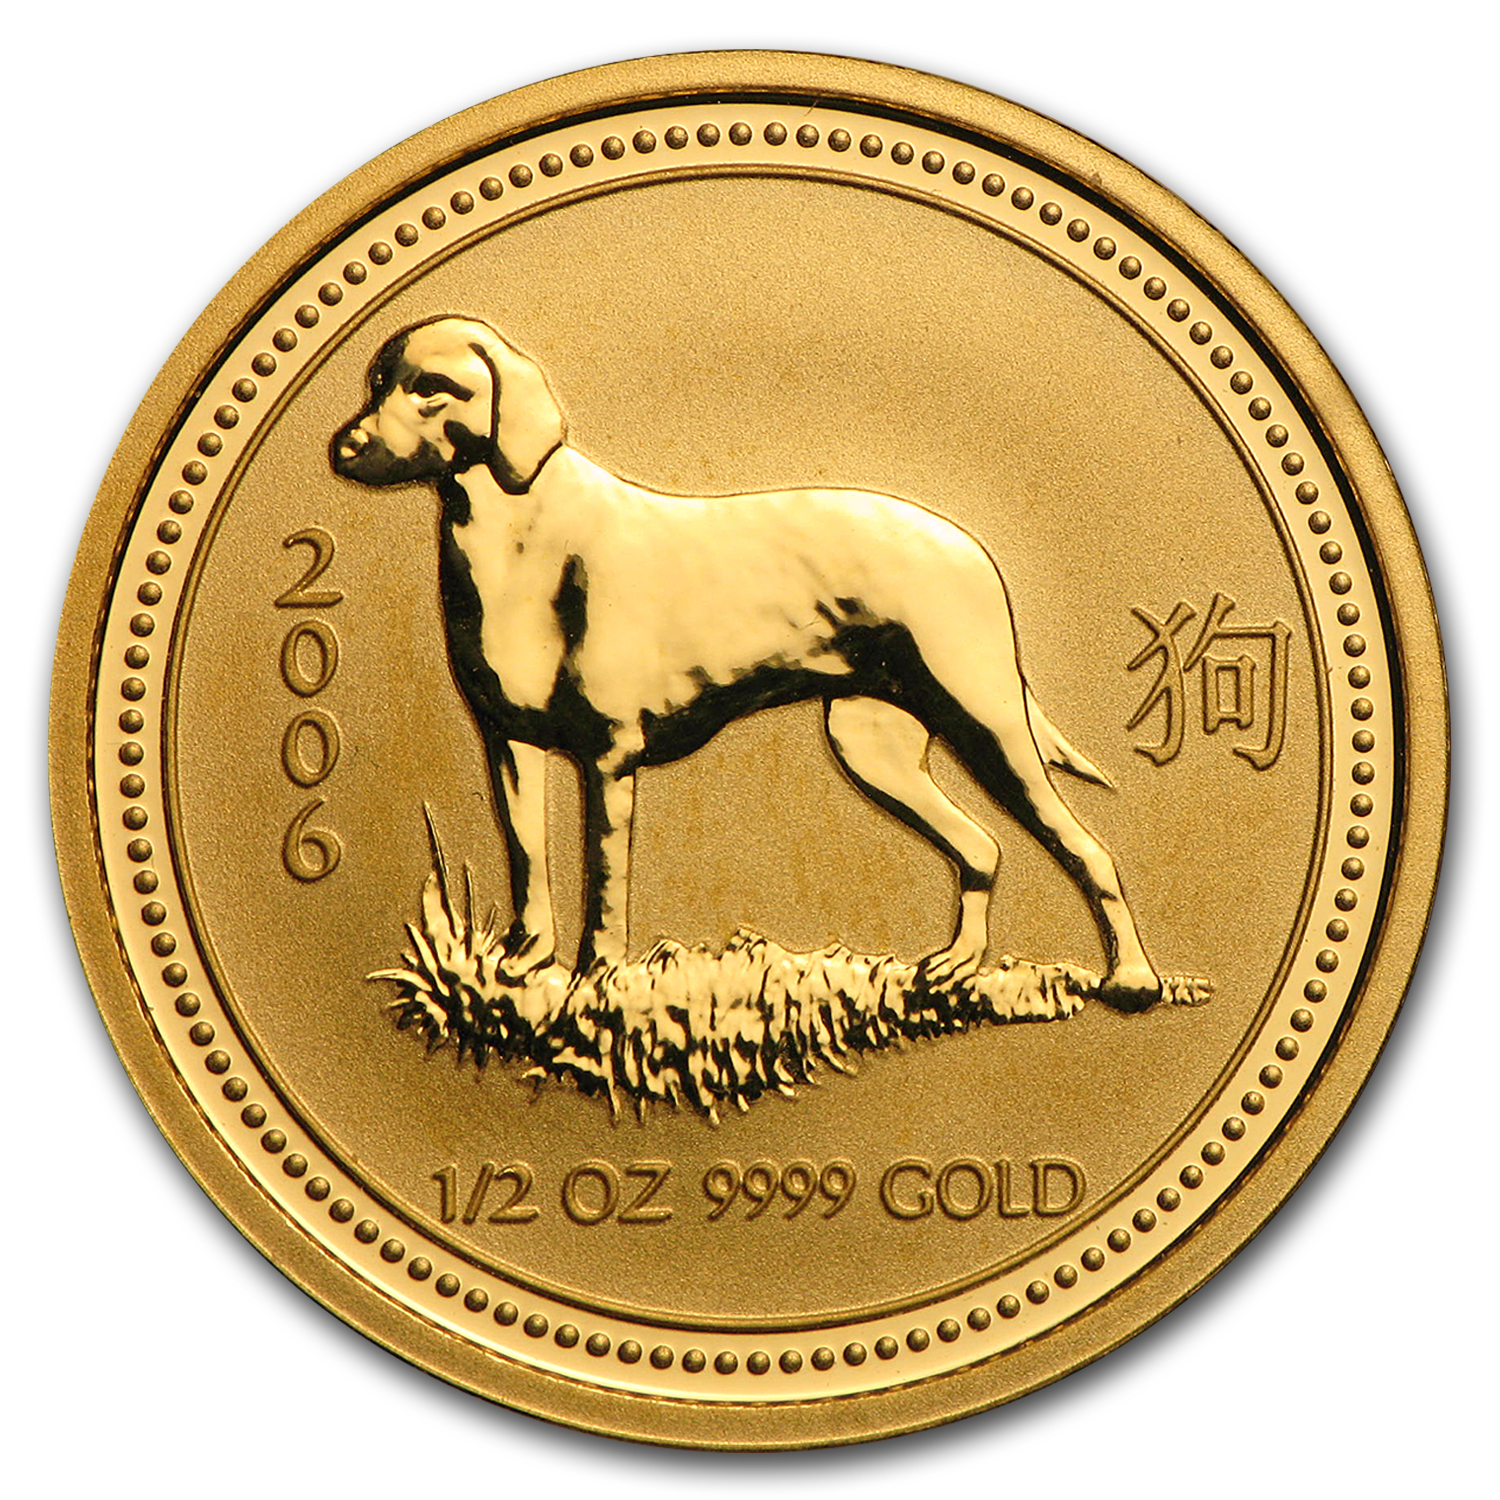 2006 Australia 1/2 oz Gold Lunar Dog BU (Series I)